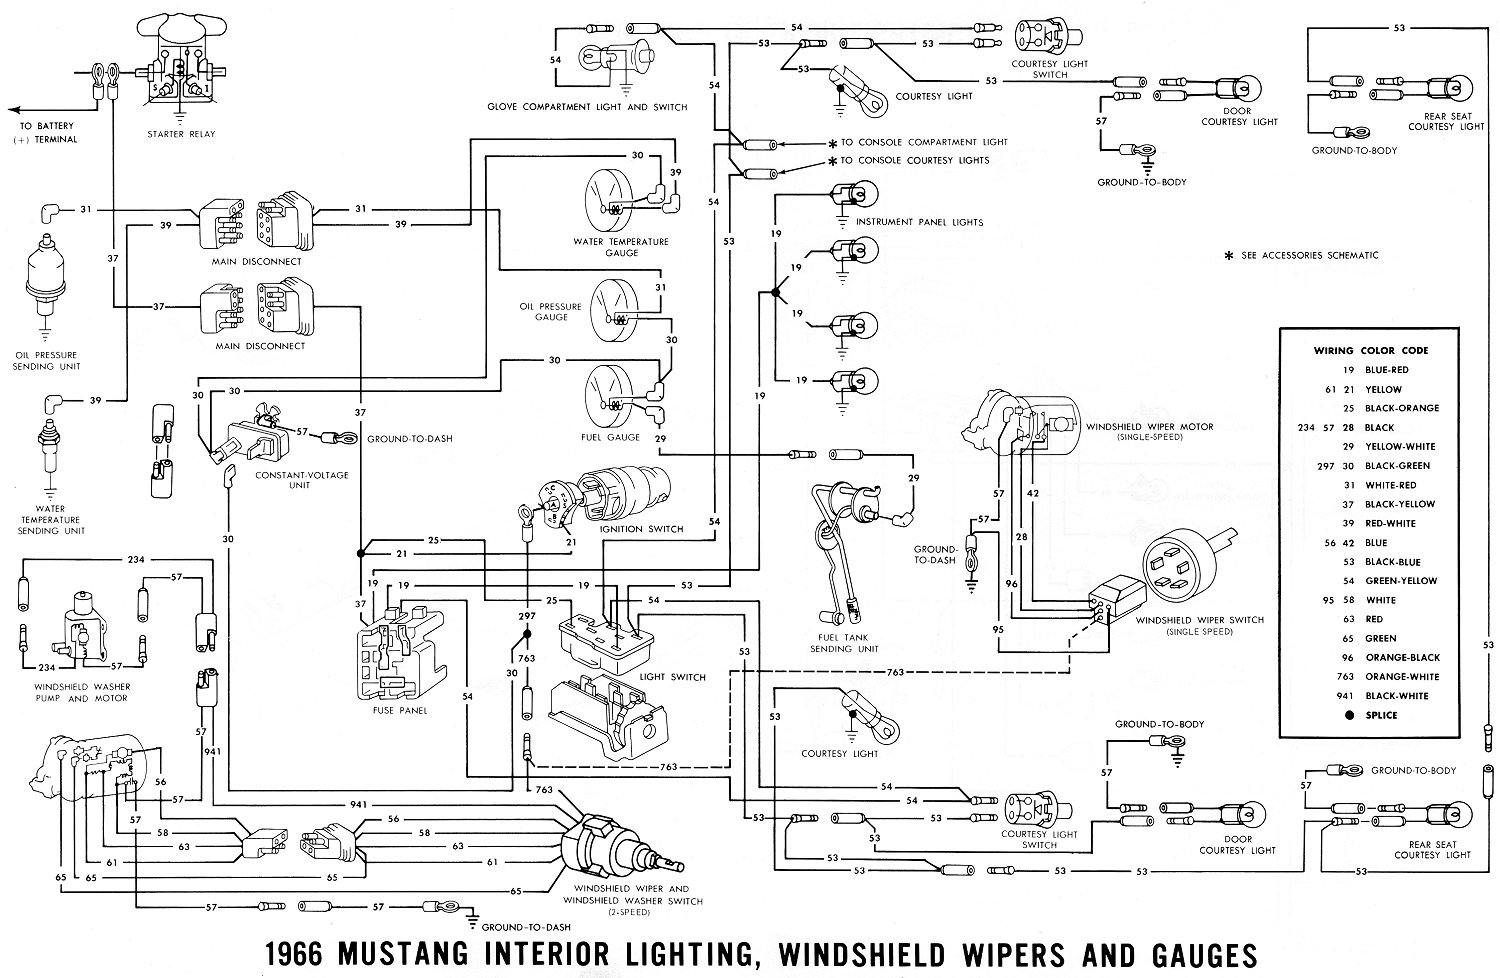 66inter1 1966 mustang wiring diagrams average joe restoration 66 mustang engine wiring diagram free at soozxer.org